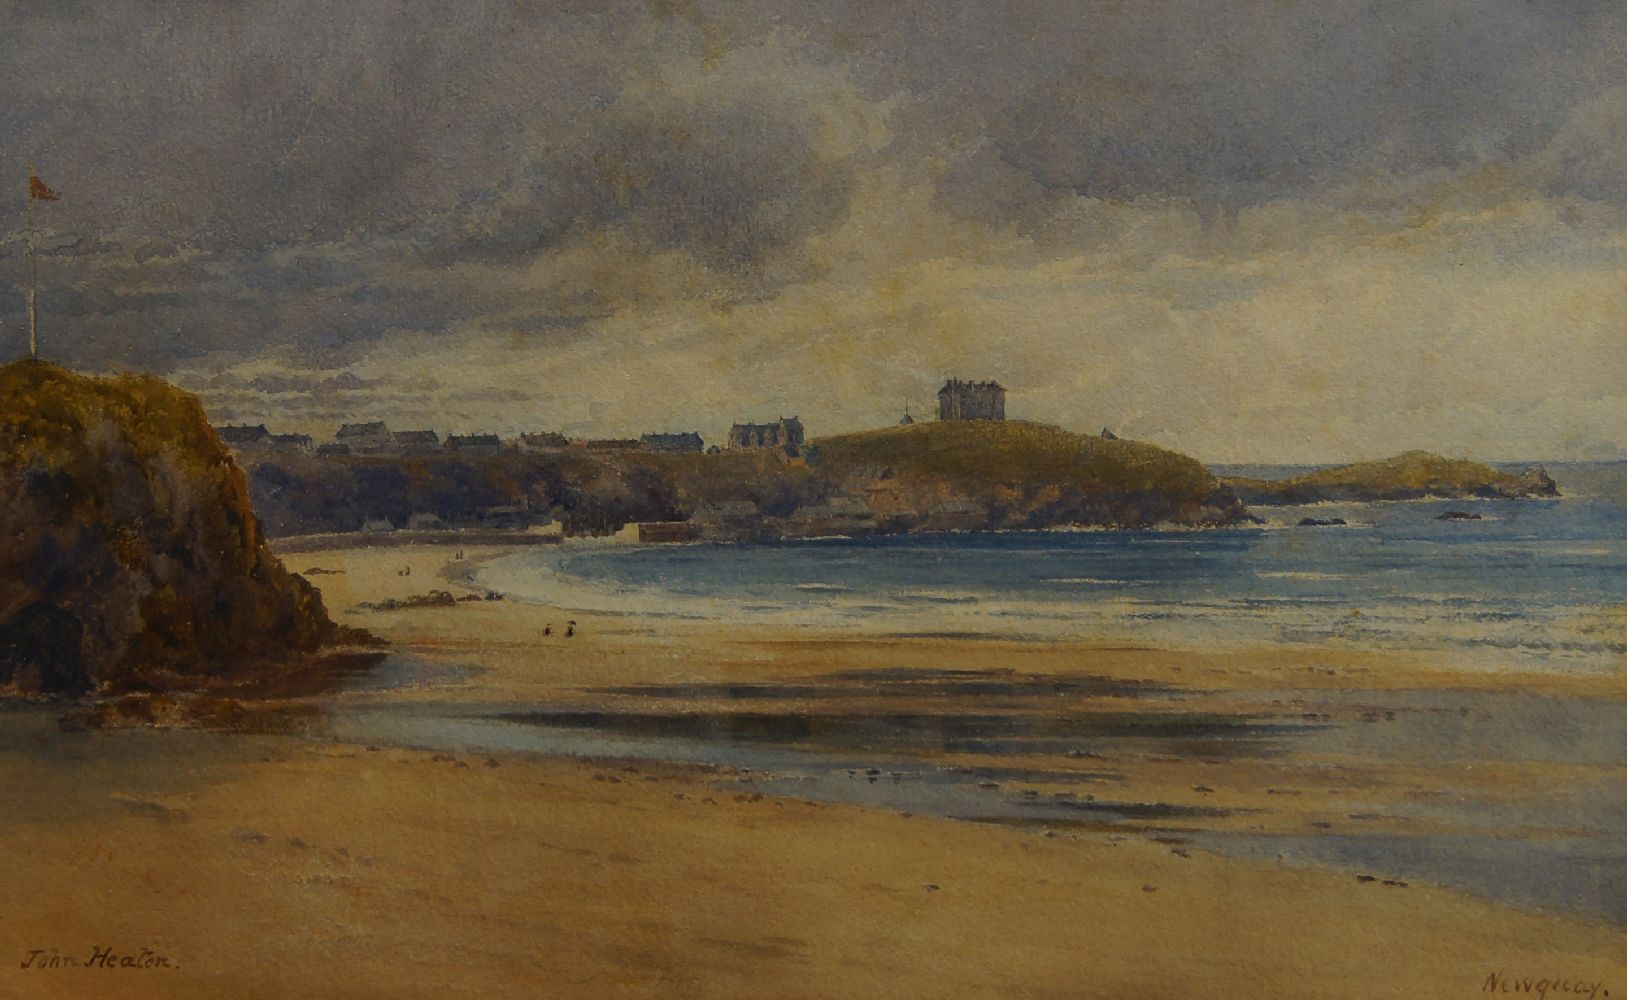 John Heaton, British act. 1884-1890- Newquay; watercolour, signed and titled, 26x42cm, Provenance: